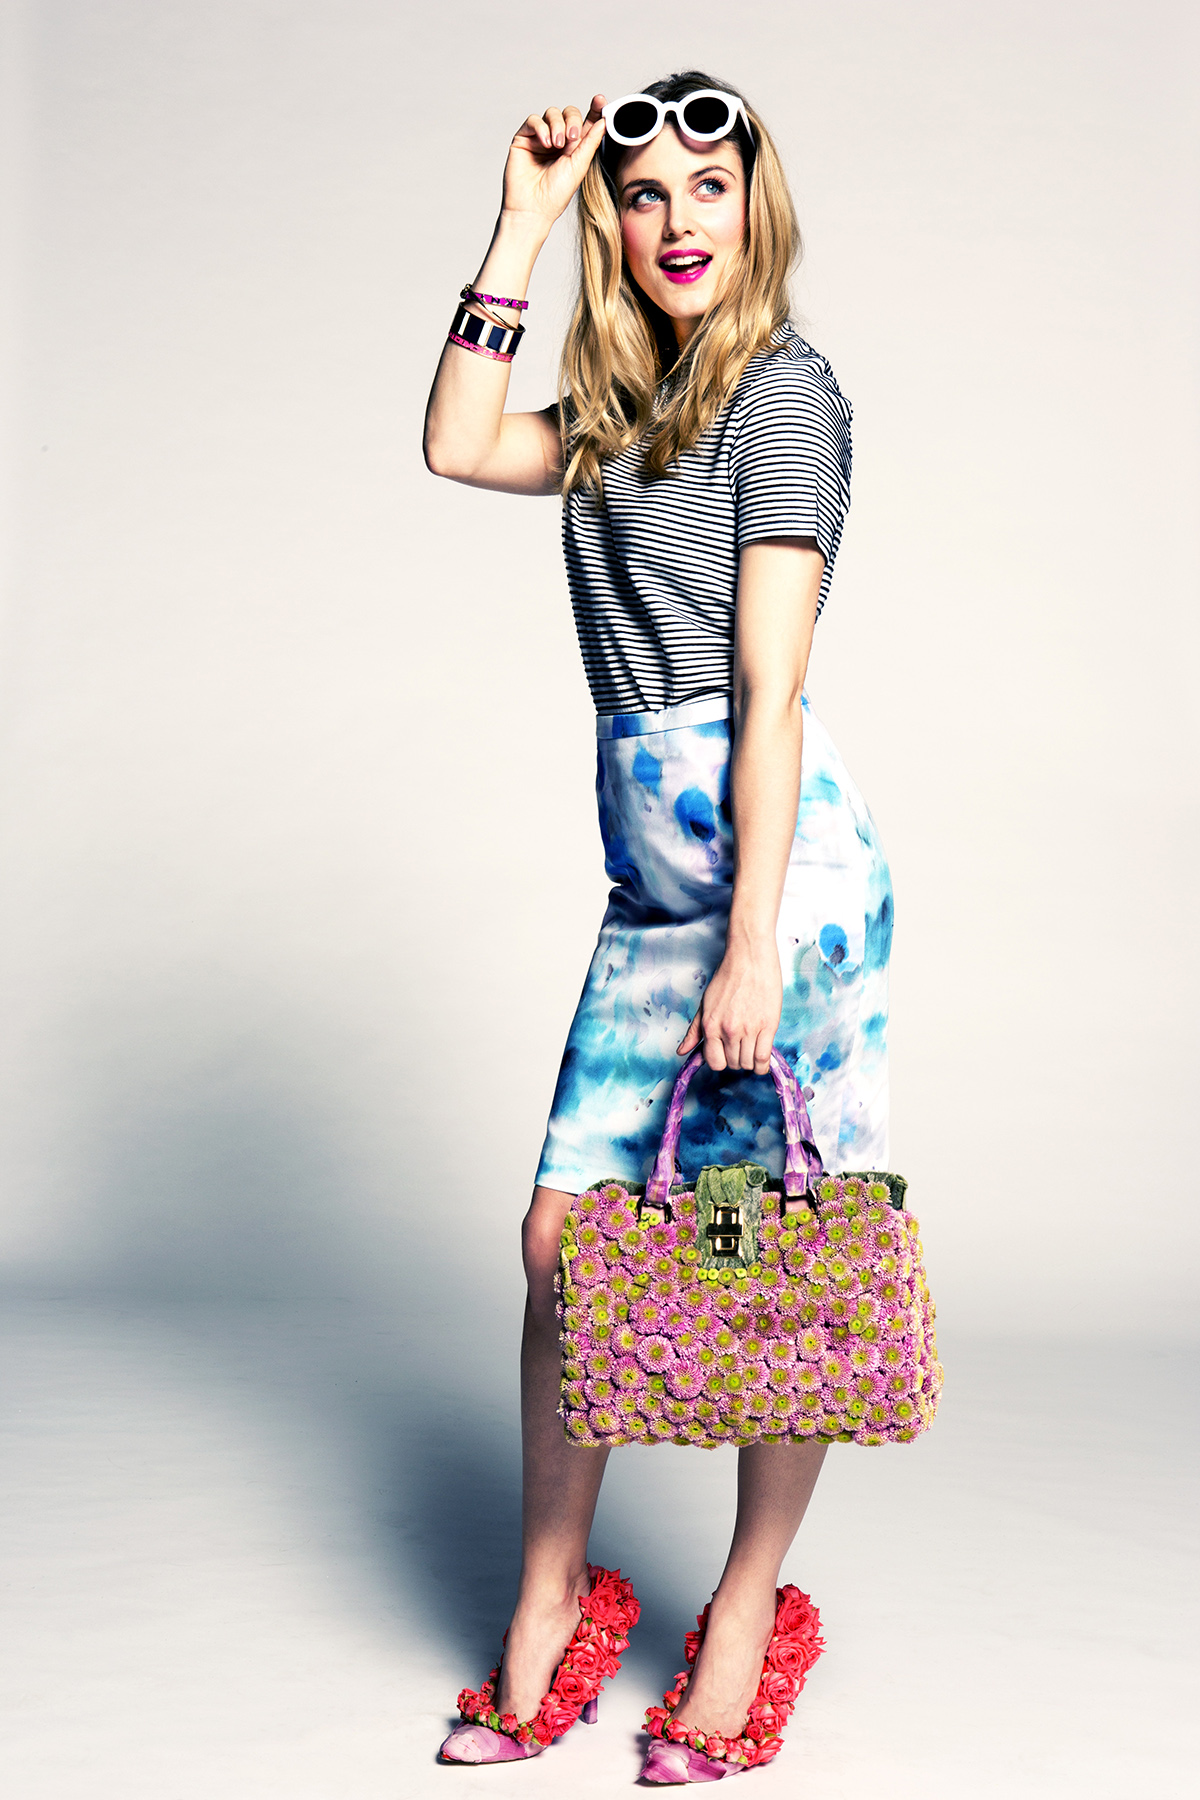 The Spring Summer accessories camaign at McArthurGlen Designer Outlets UK -2nd 20th April, featuring Ashley James